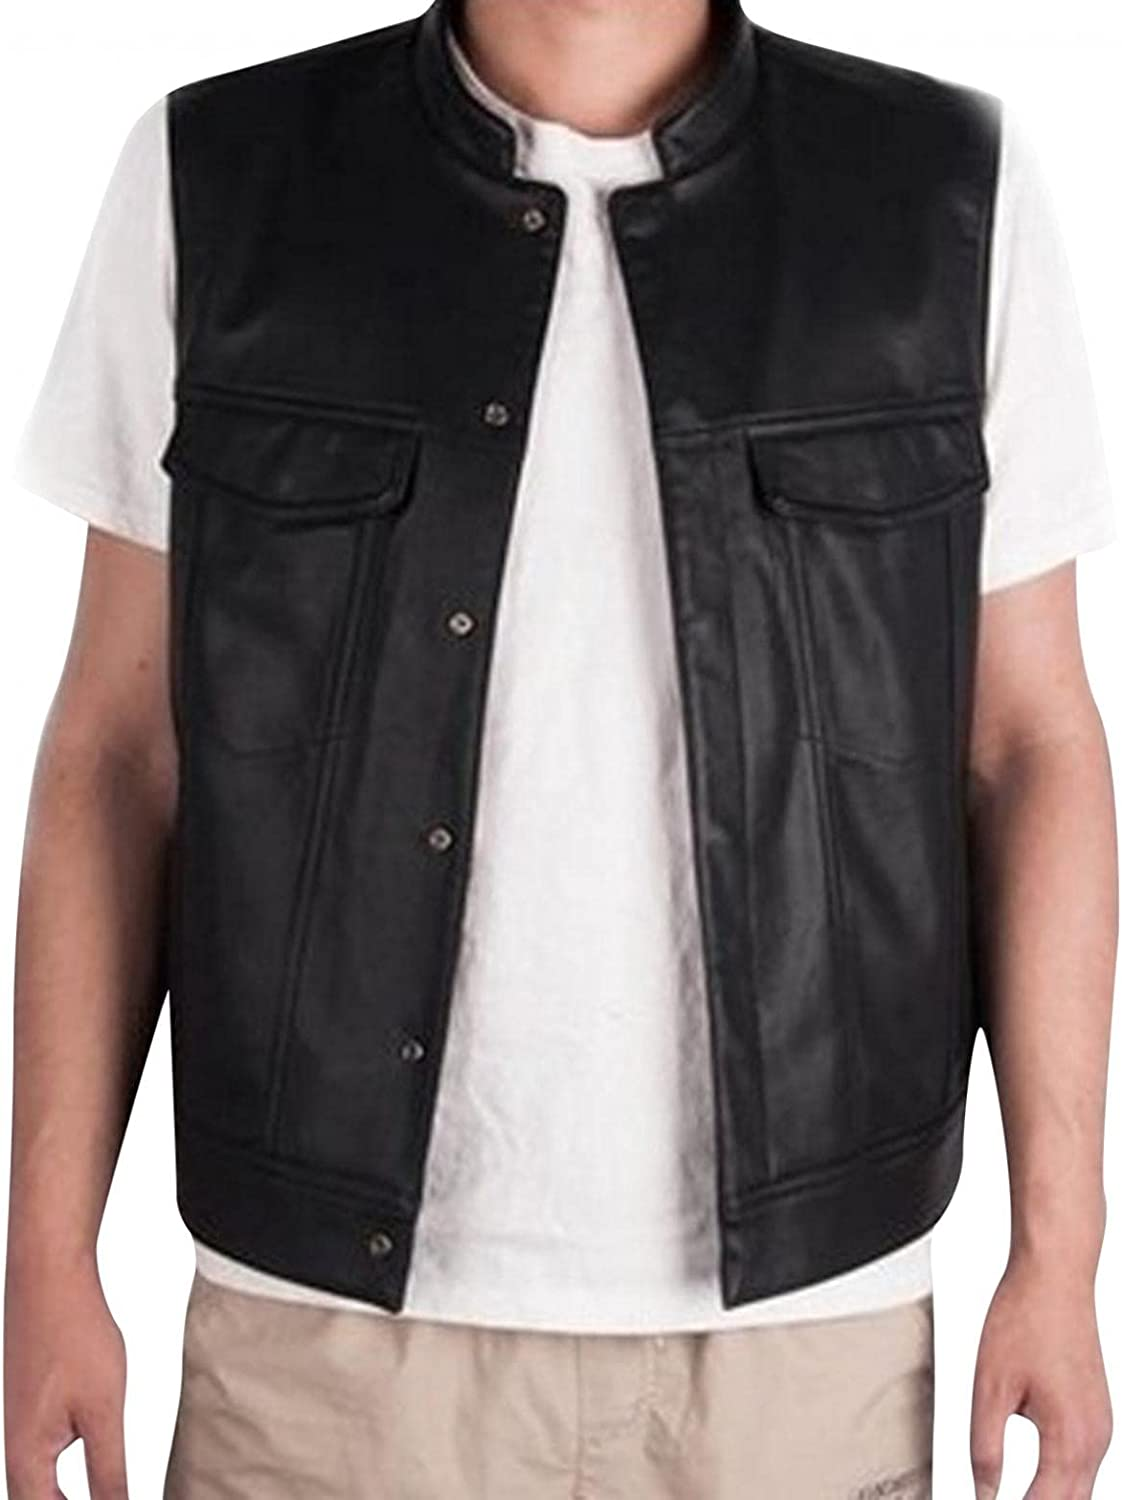 XUNFUN Faux Leather Suit Vest Men V-Neck Classic Casual Lightweight Western Cowboy Waistcoat Jacket with Snap Button Closure